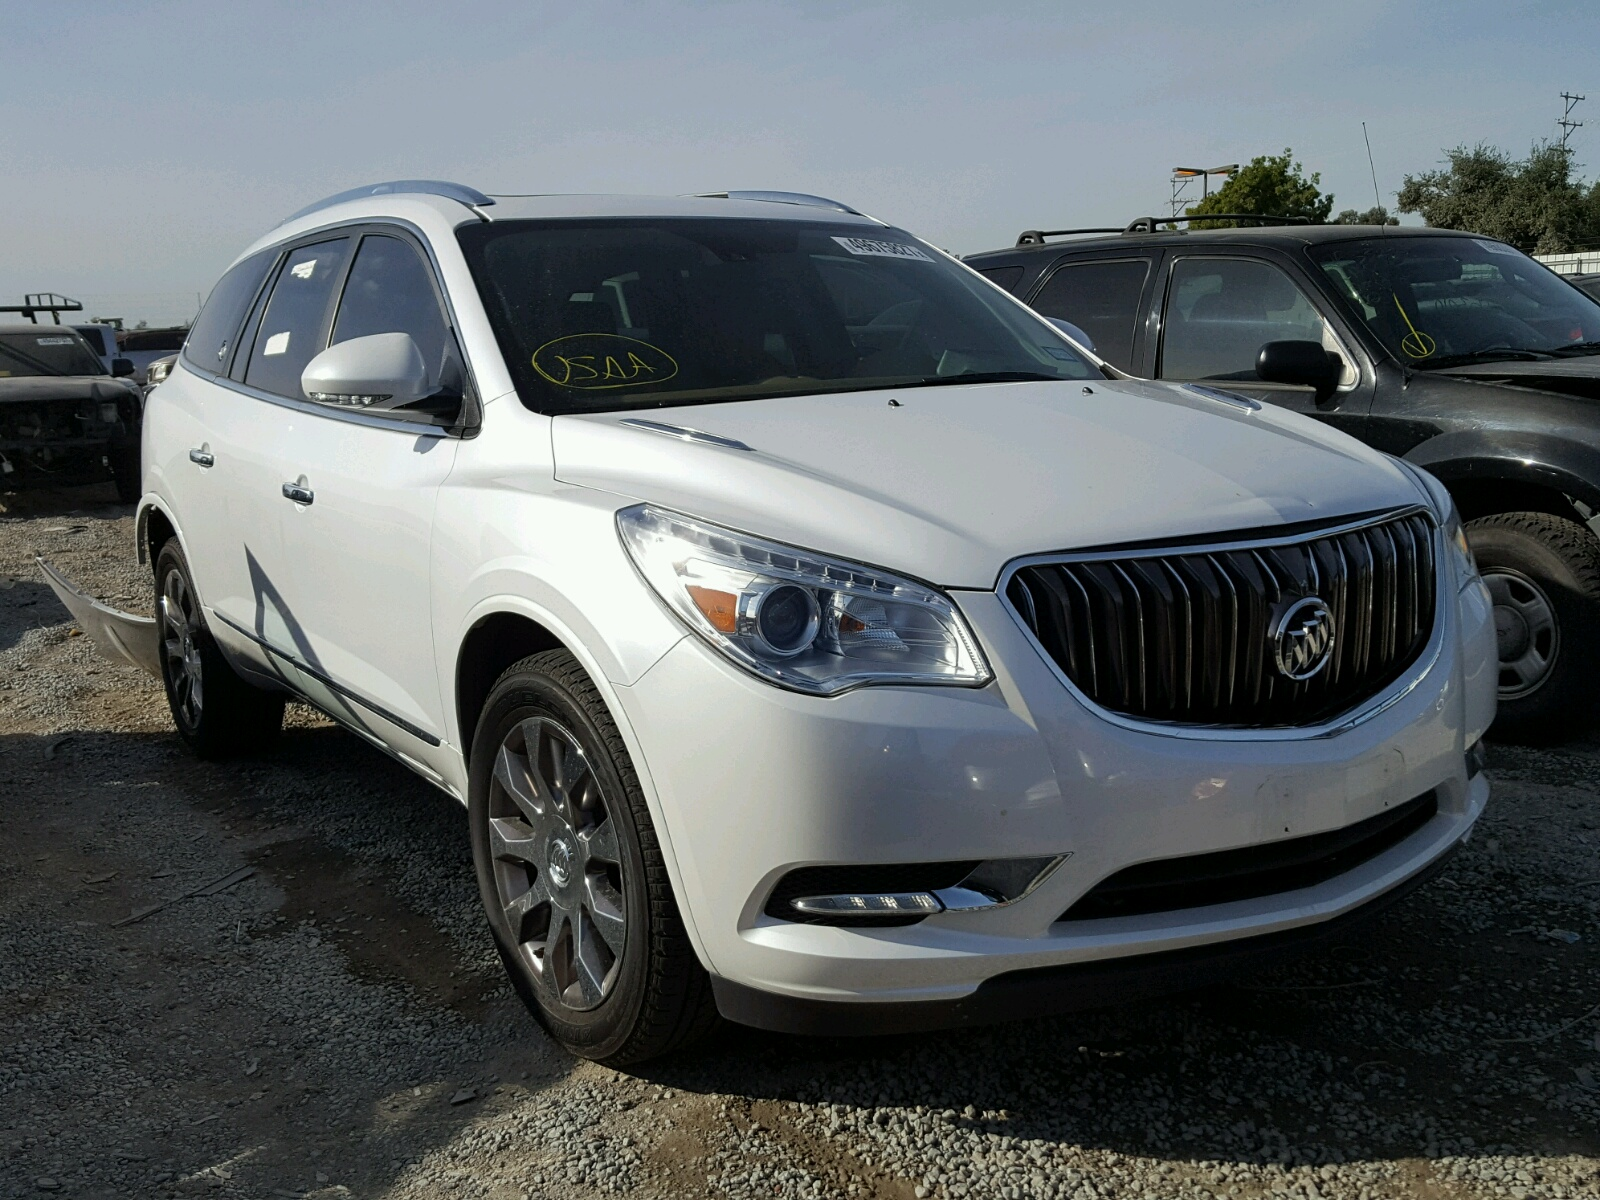 left view buick copart online auto in en ca san carfinder enclave certificate salvage diego sale on auctions white lot